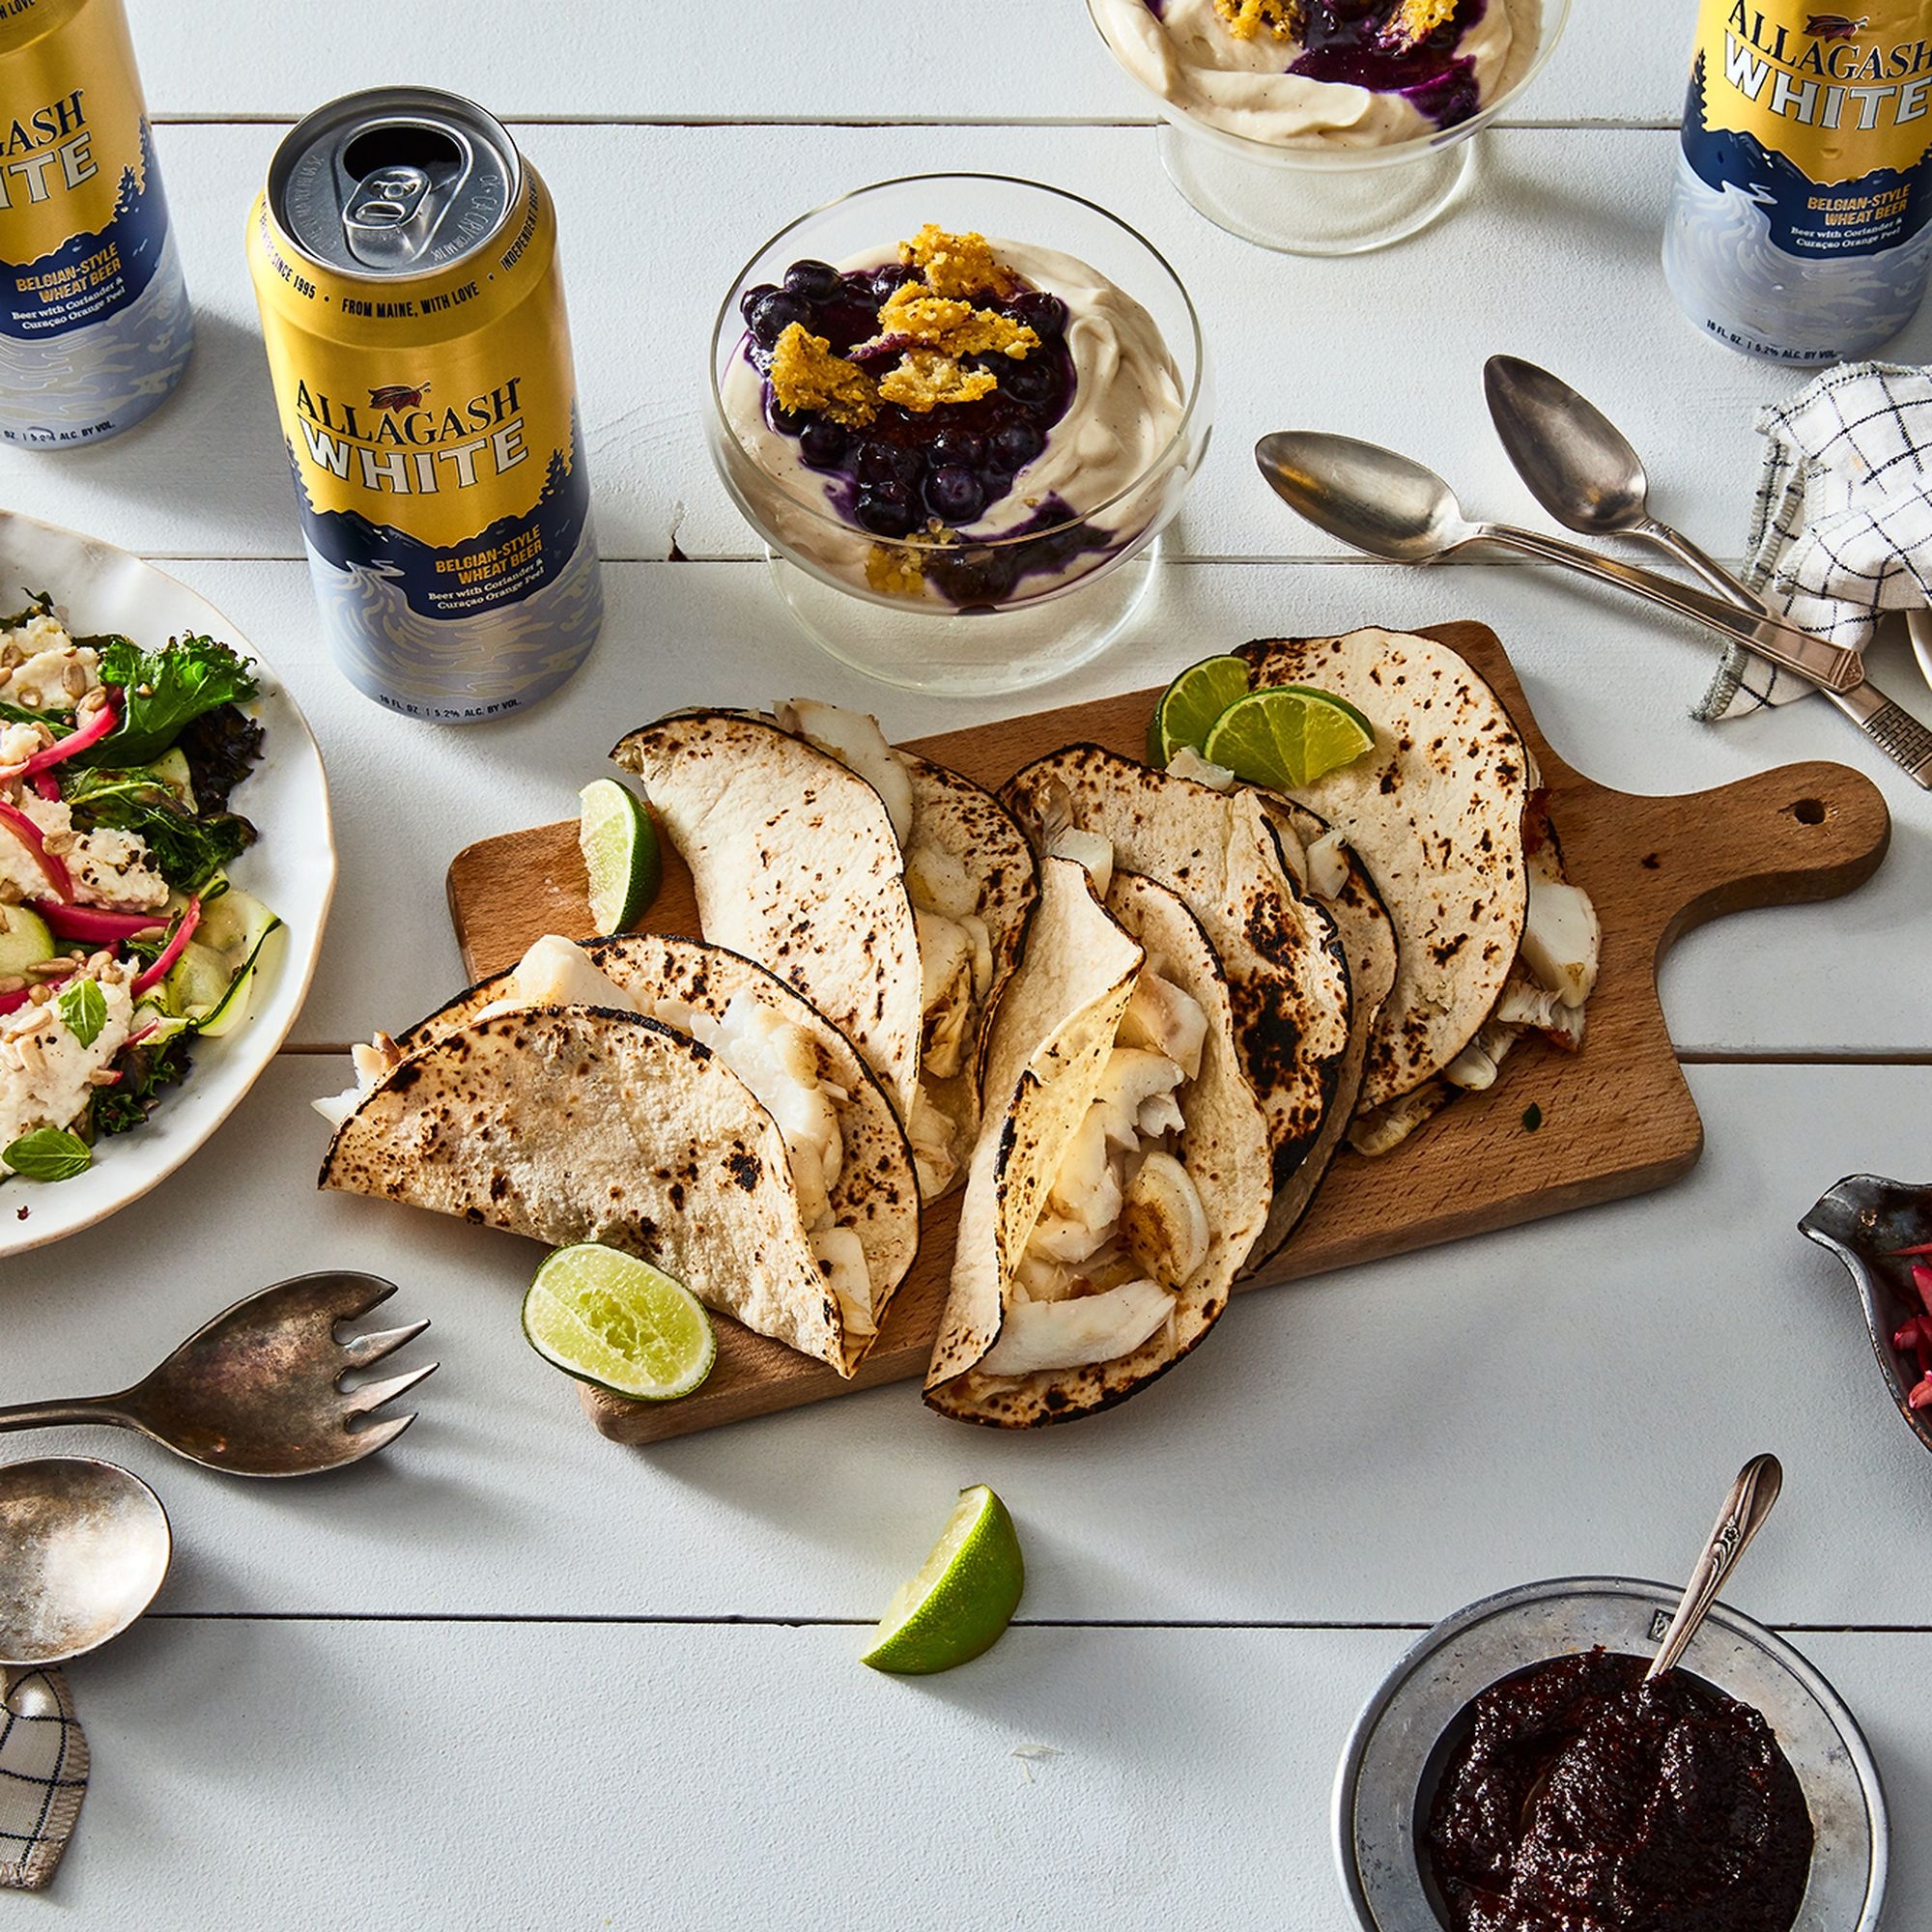 Our 13 Favorite Tips for Throwing the Chillest Summer Cookout